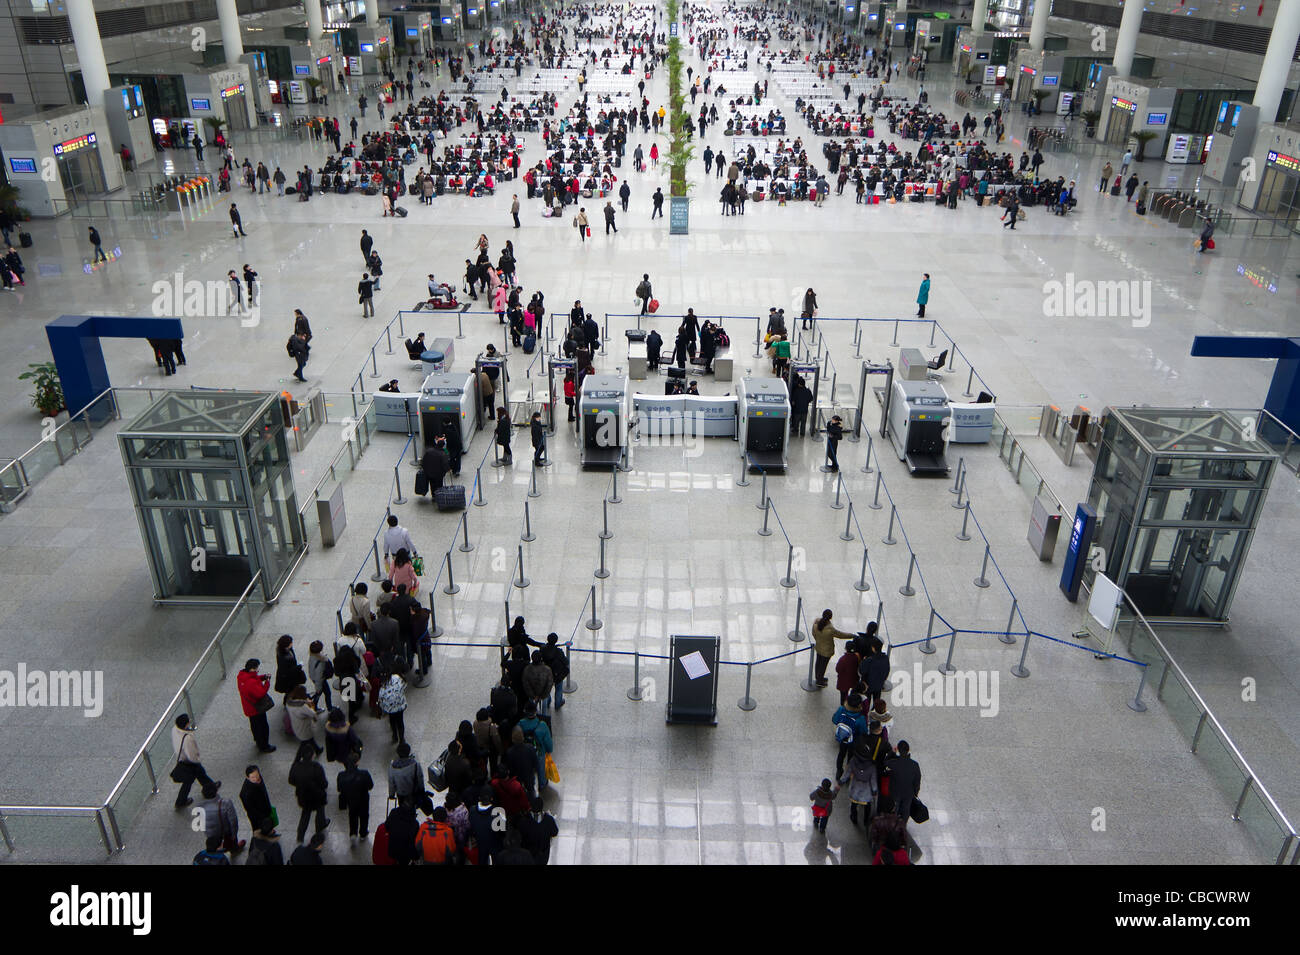 Security gate and waiting room for high speed trains at the Shanghai Hongqiao Railway Station, China - Stock Image